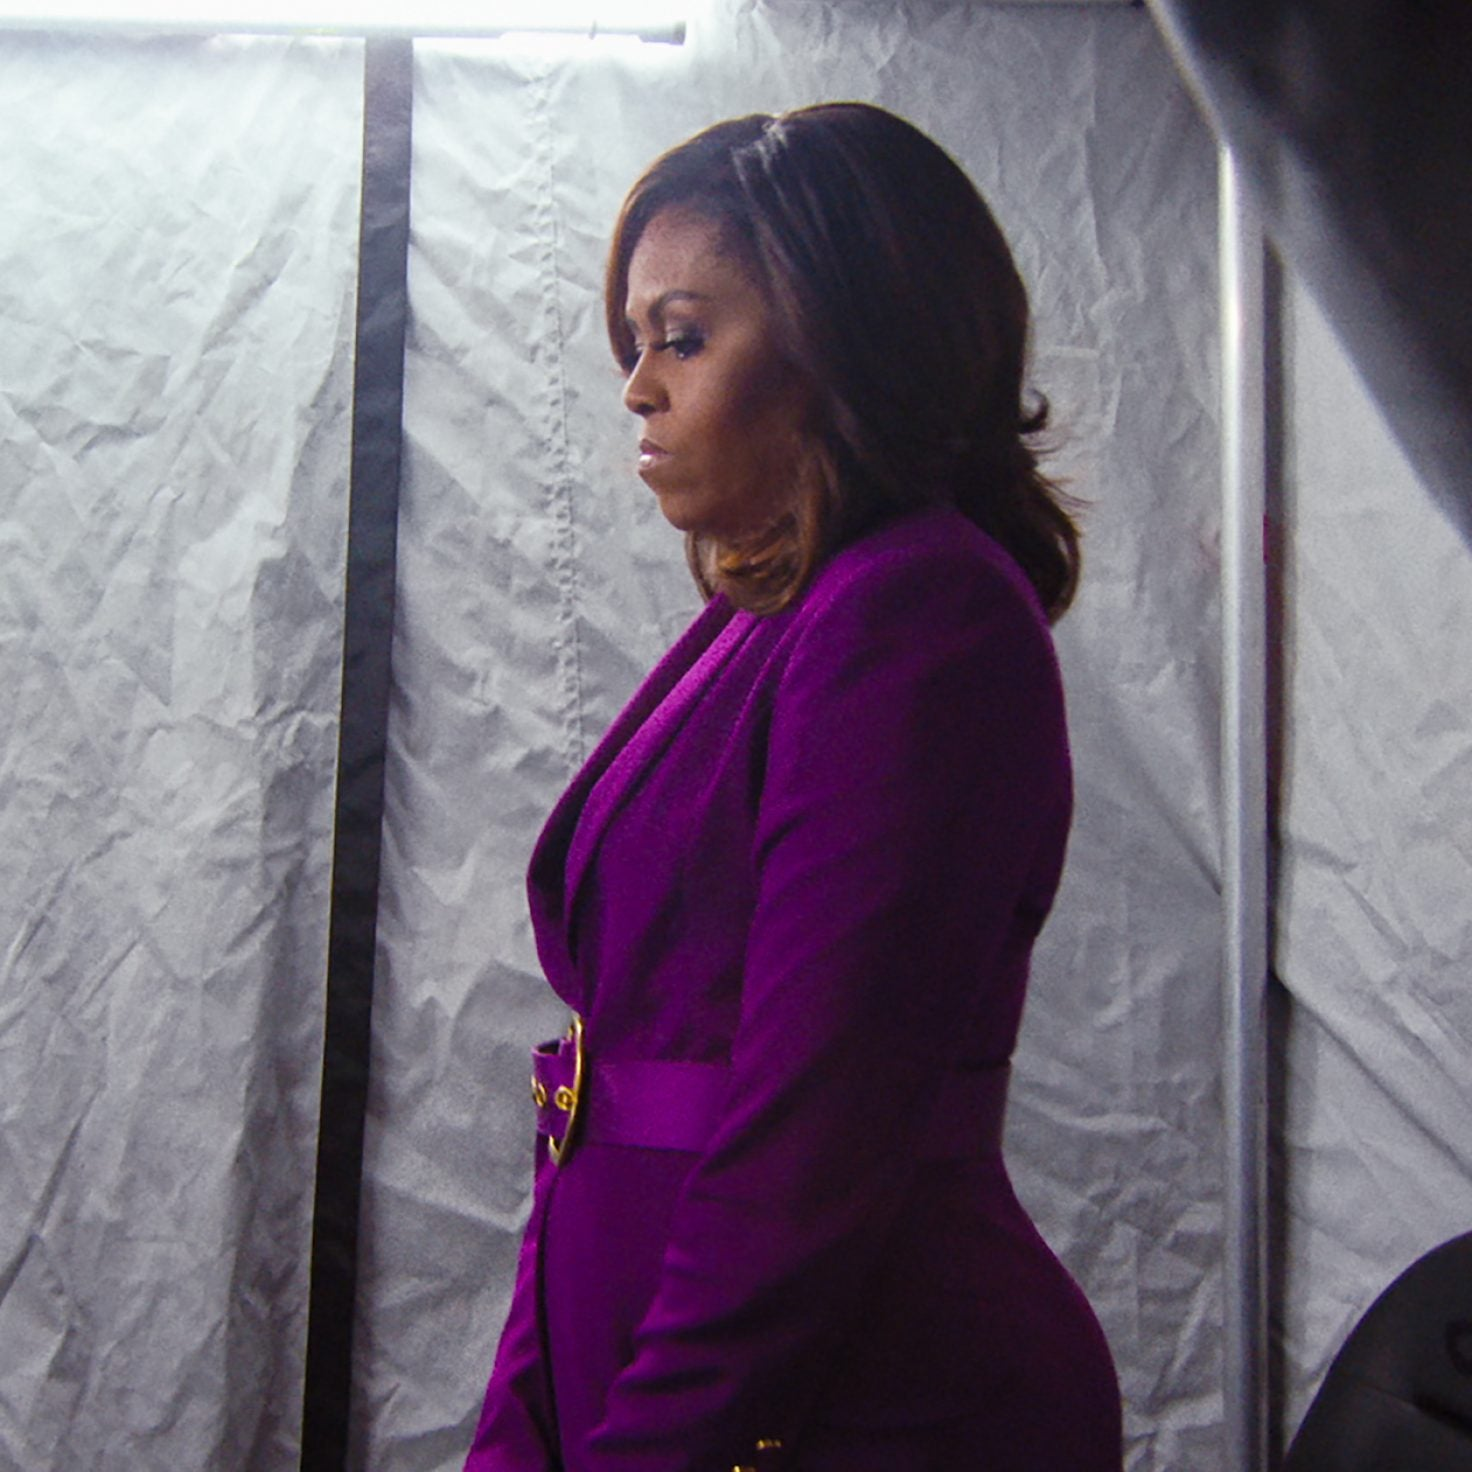 Why Michelle Obama Offered The 'Becoming' Director The Coveted Job On The Spot